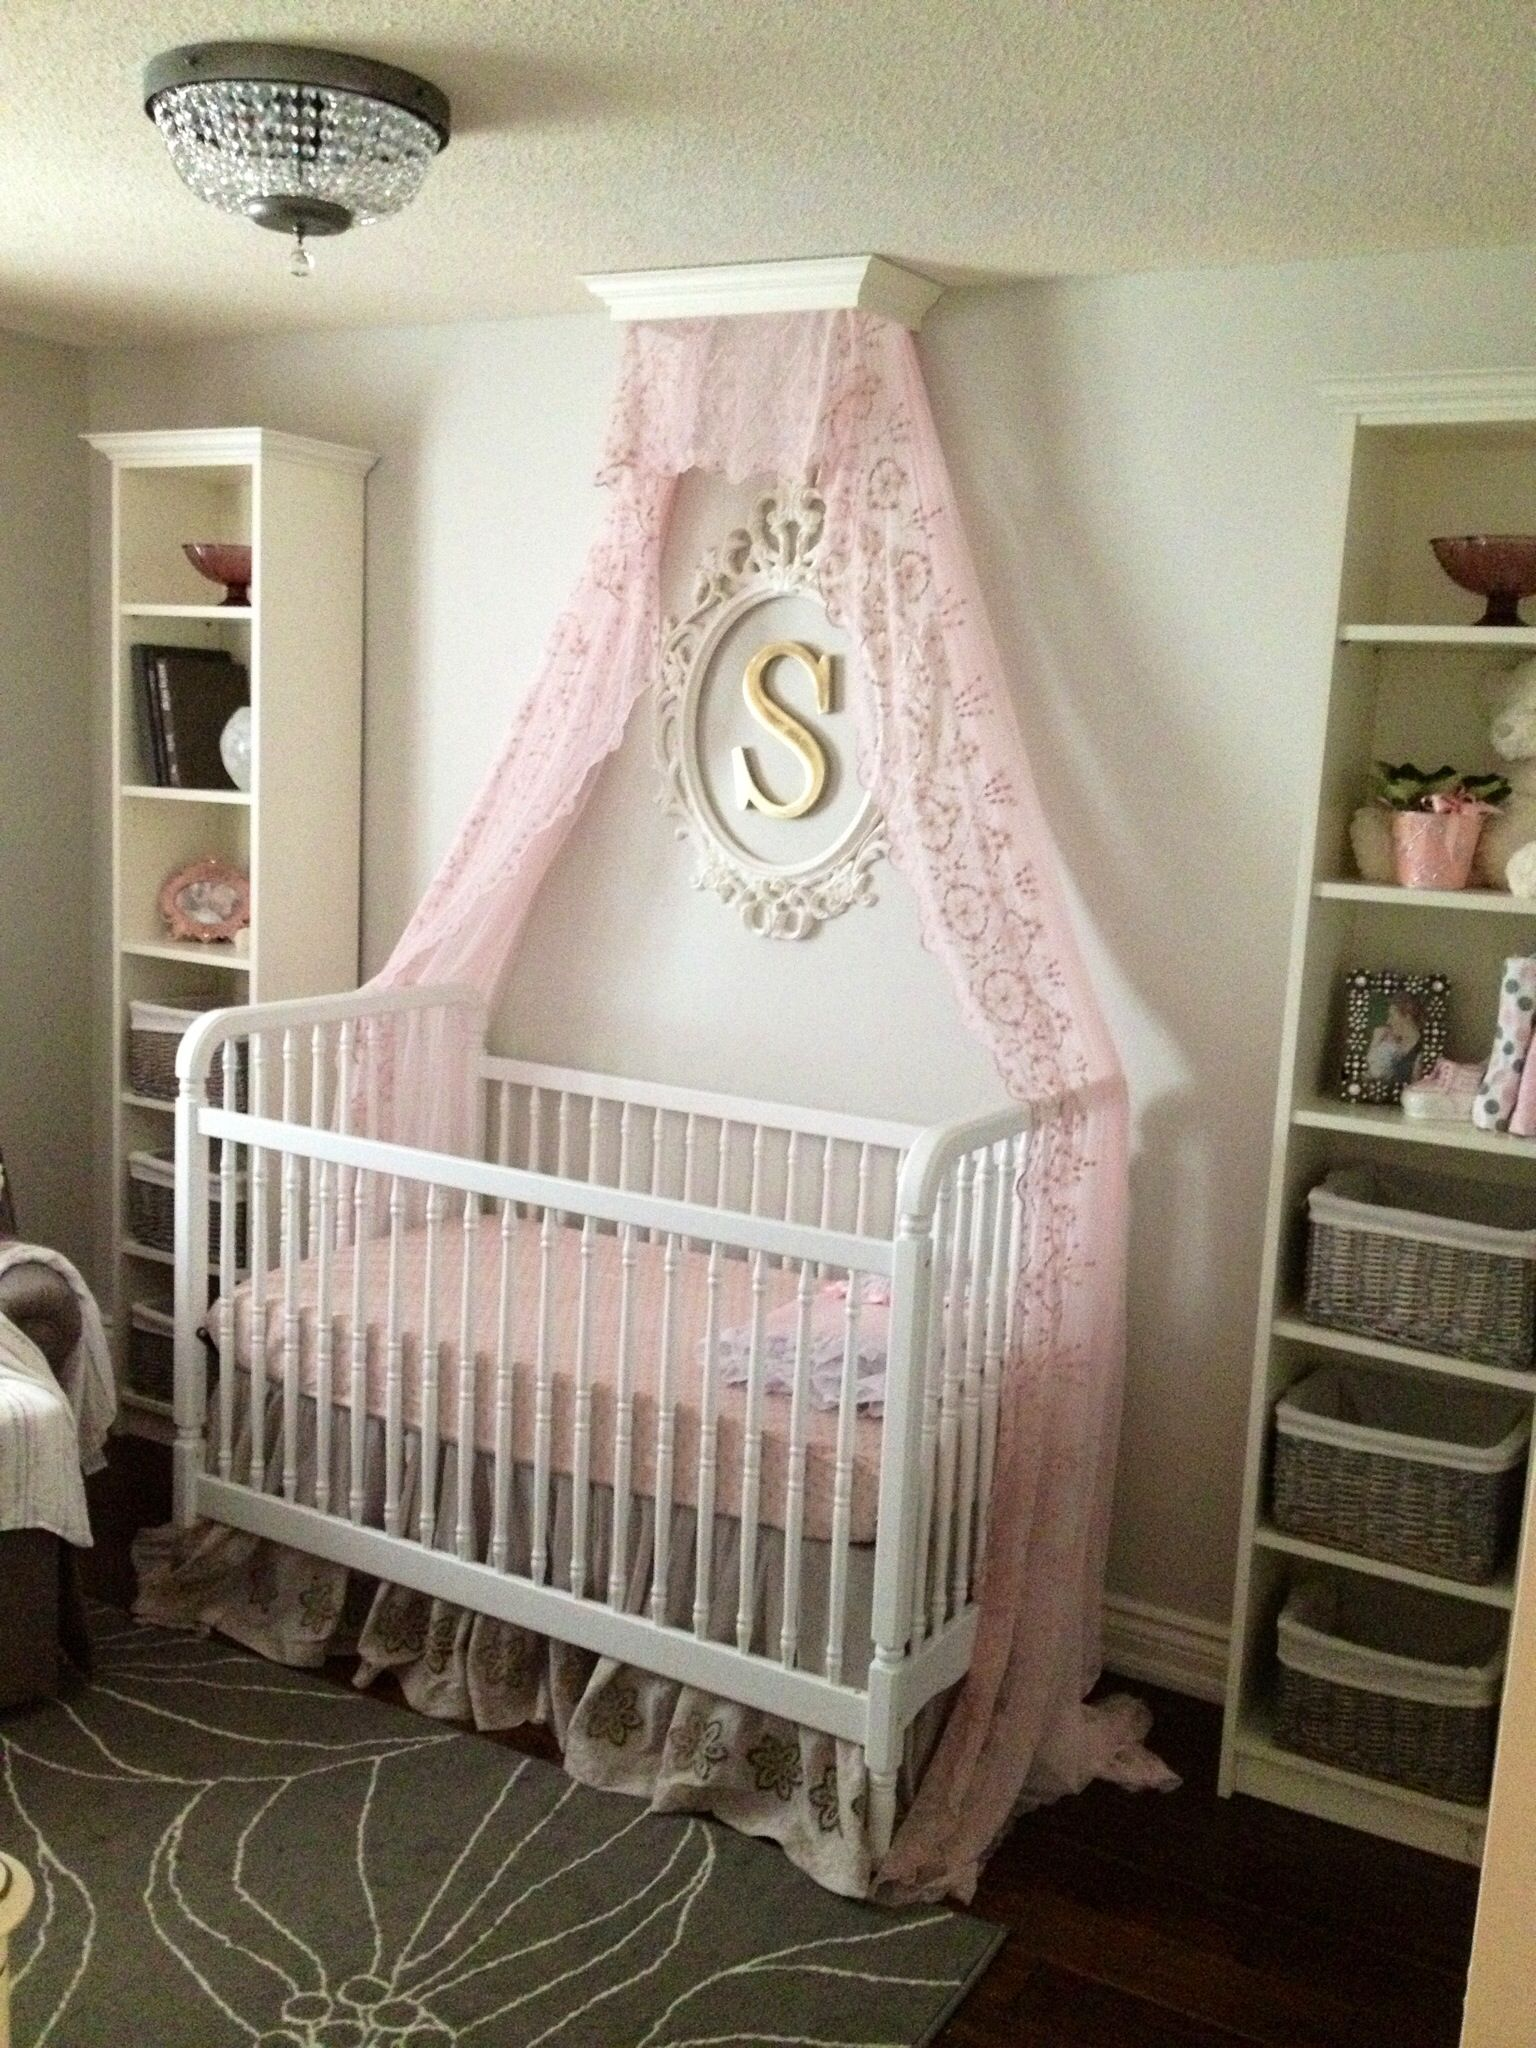 Baby cribs with canopy - Pink And Gray Nursery With Crib Canopy For Baby Girl